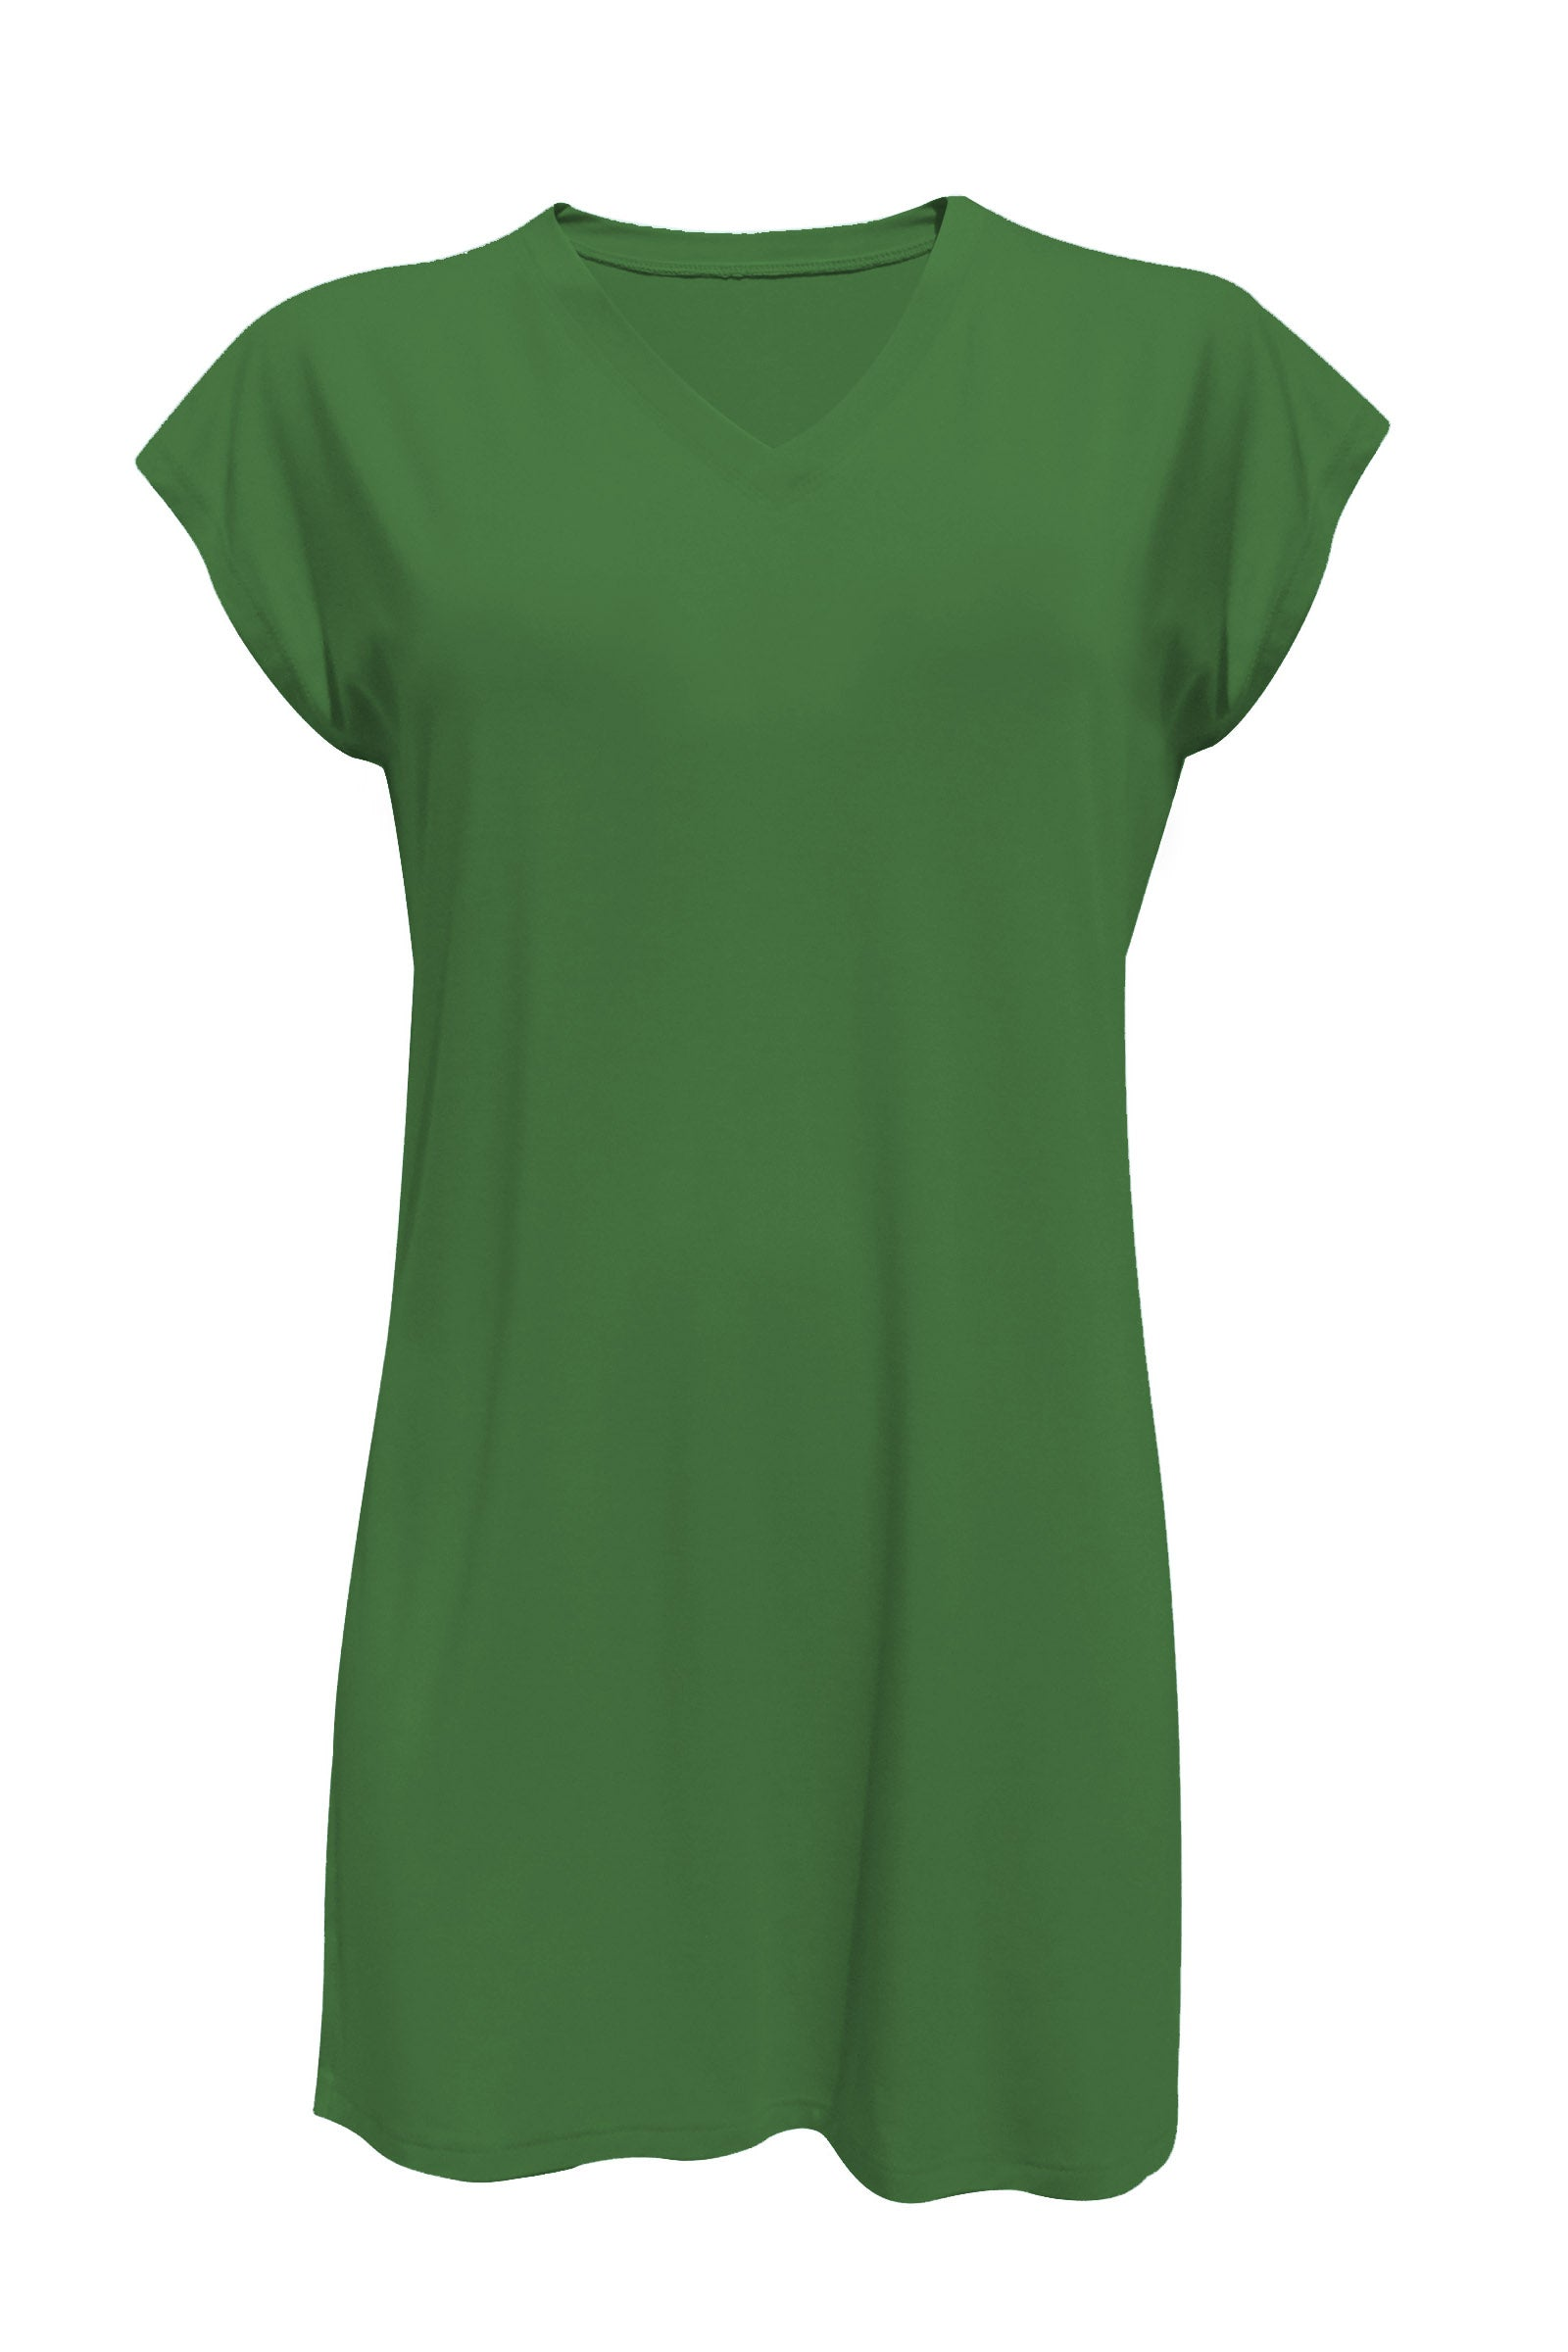 Felicity Tunic by Moovment, Avocado, V-neck, cap sleeves, side slits, bamboo, sizes XS to XXL, made in Quebec